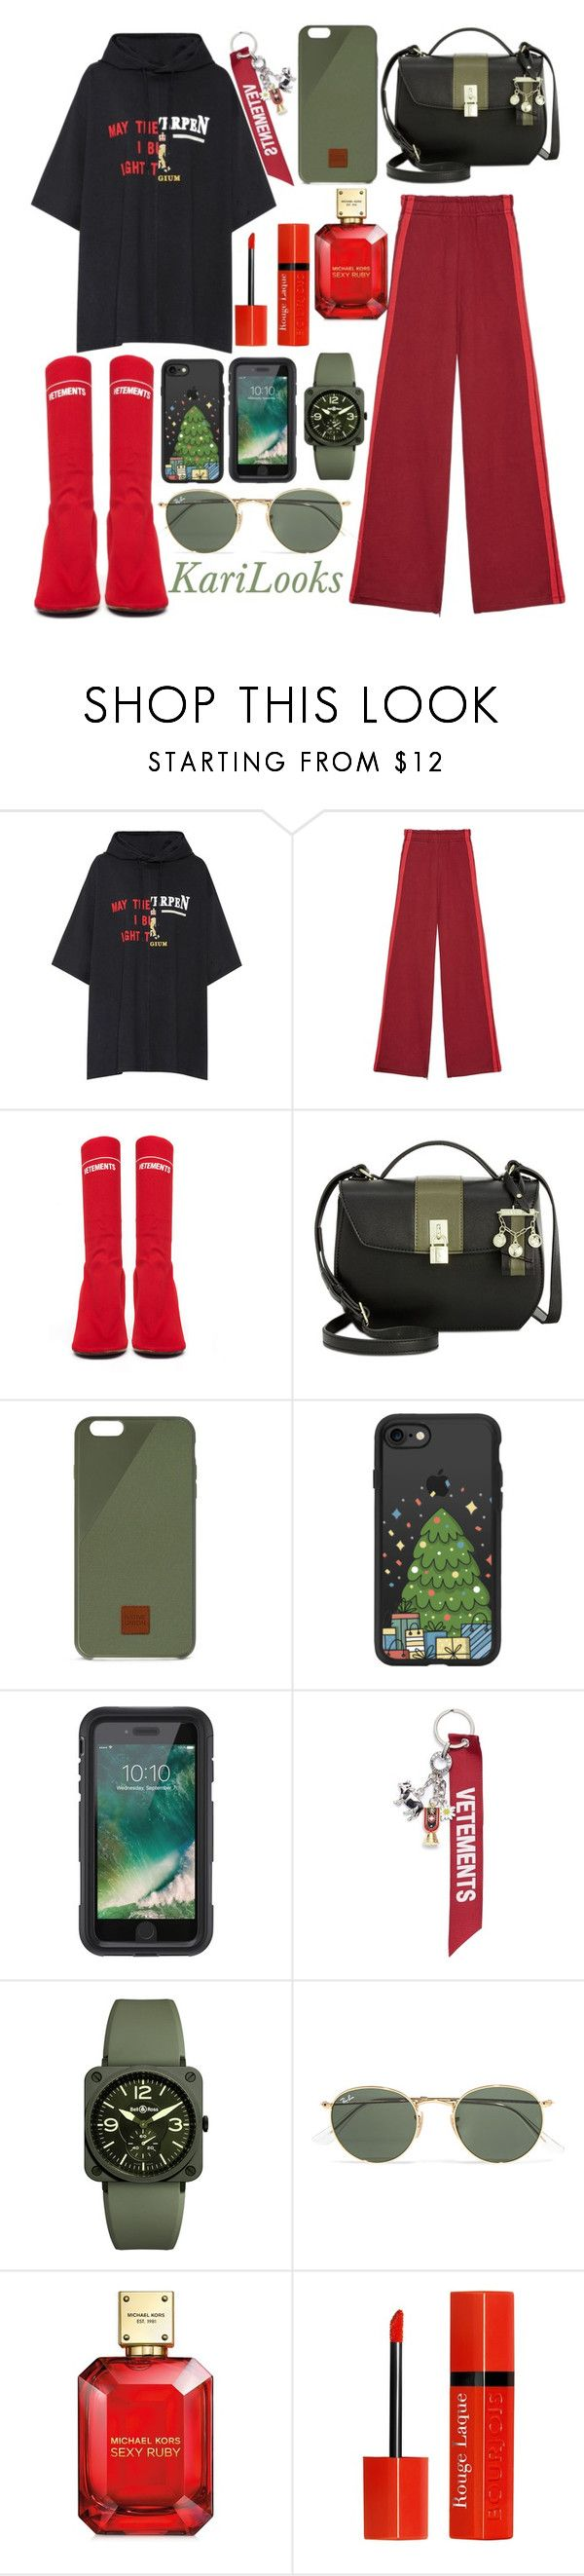 """Vetements"" by karilooks ❤ liked on Polyvore featuring Vetements, Nine West, Native Union, Casetify, Griffin, Bell & Ross, Ray-Ban, Michael Kors and Bourjois"